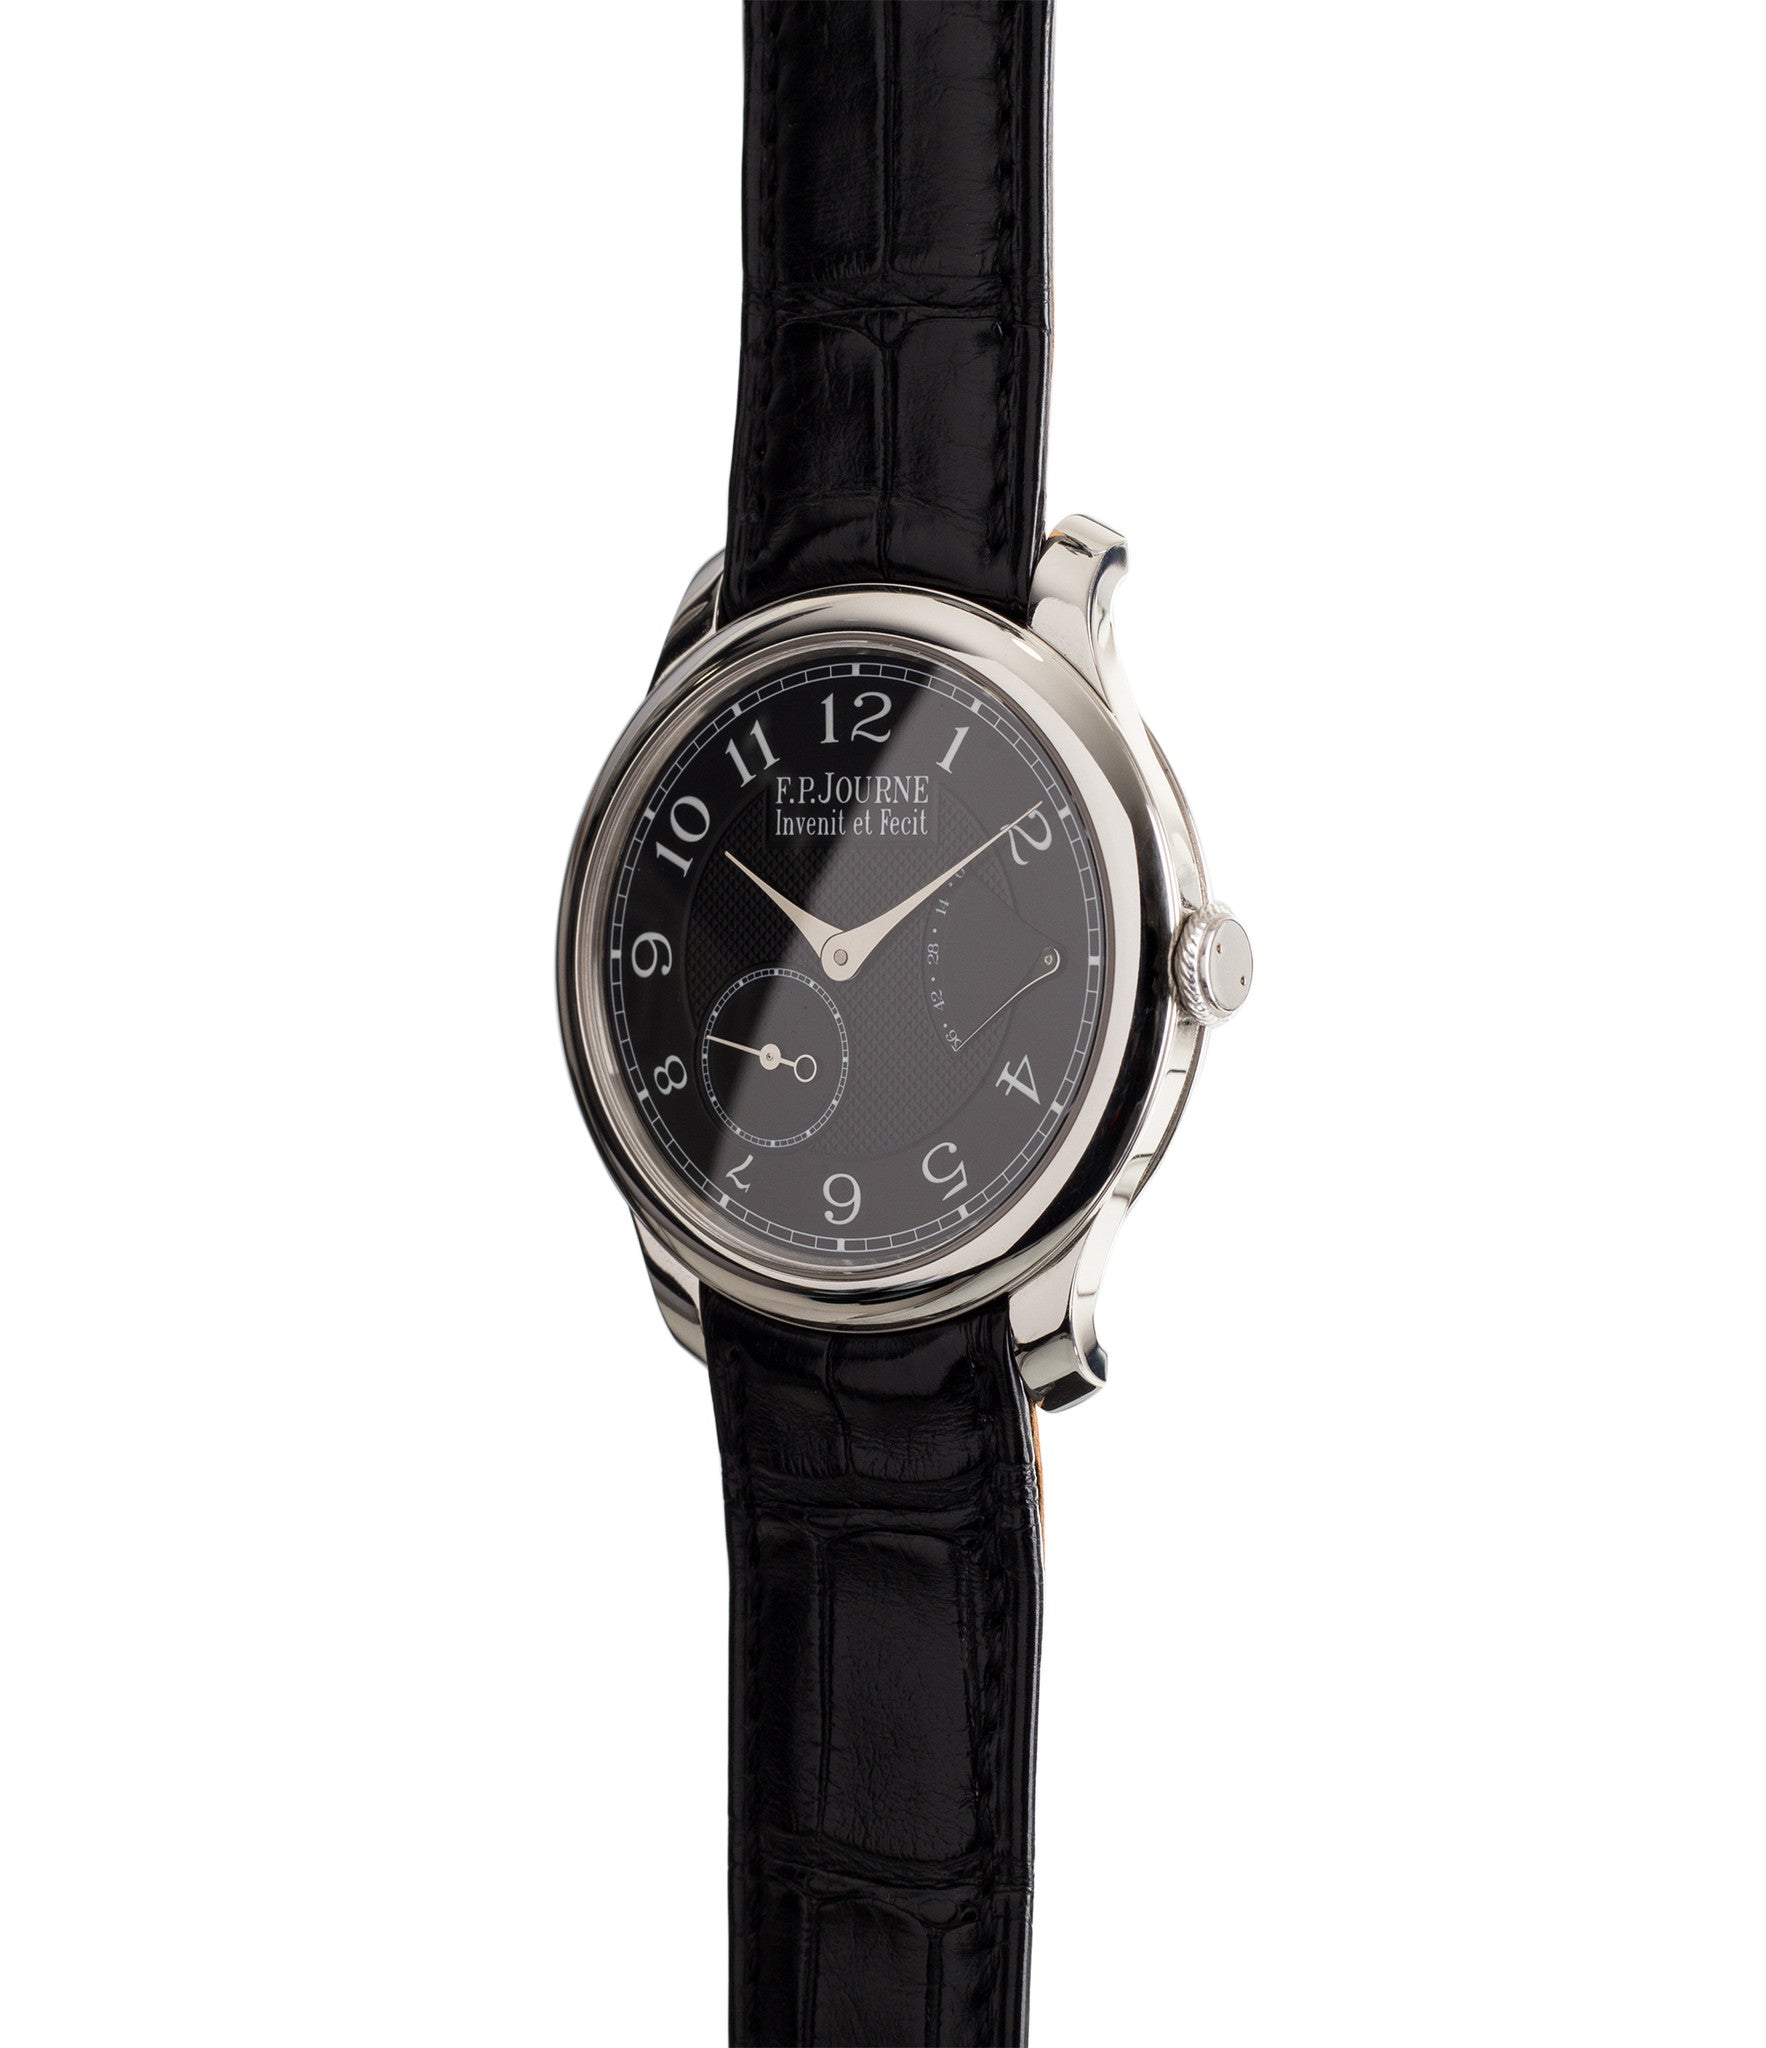 buy F. P. Journe Chronometre Souverain Black Label platinum rare independent watchmaker pre-owned dress time-only watch for sale online at WATCH XCHANGE London